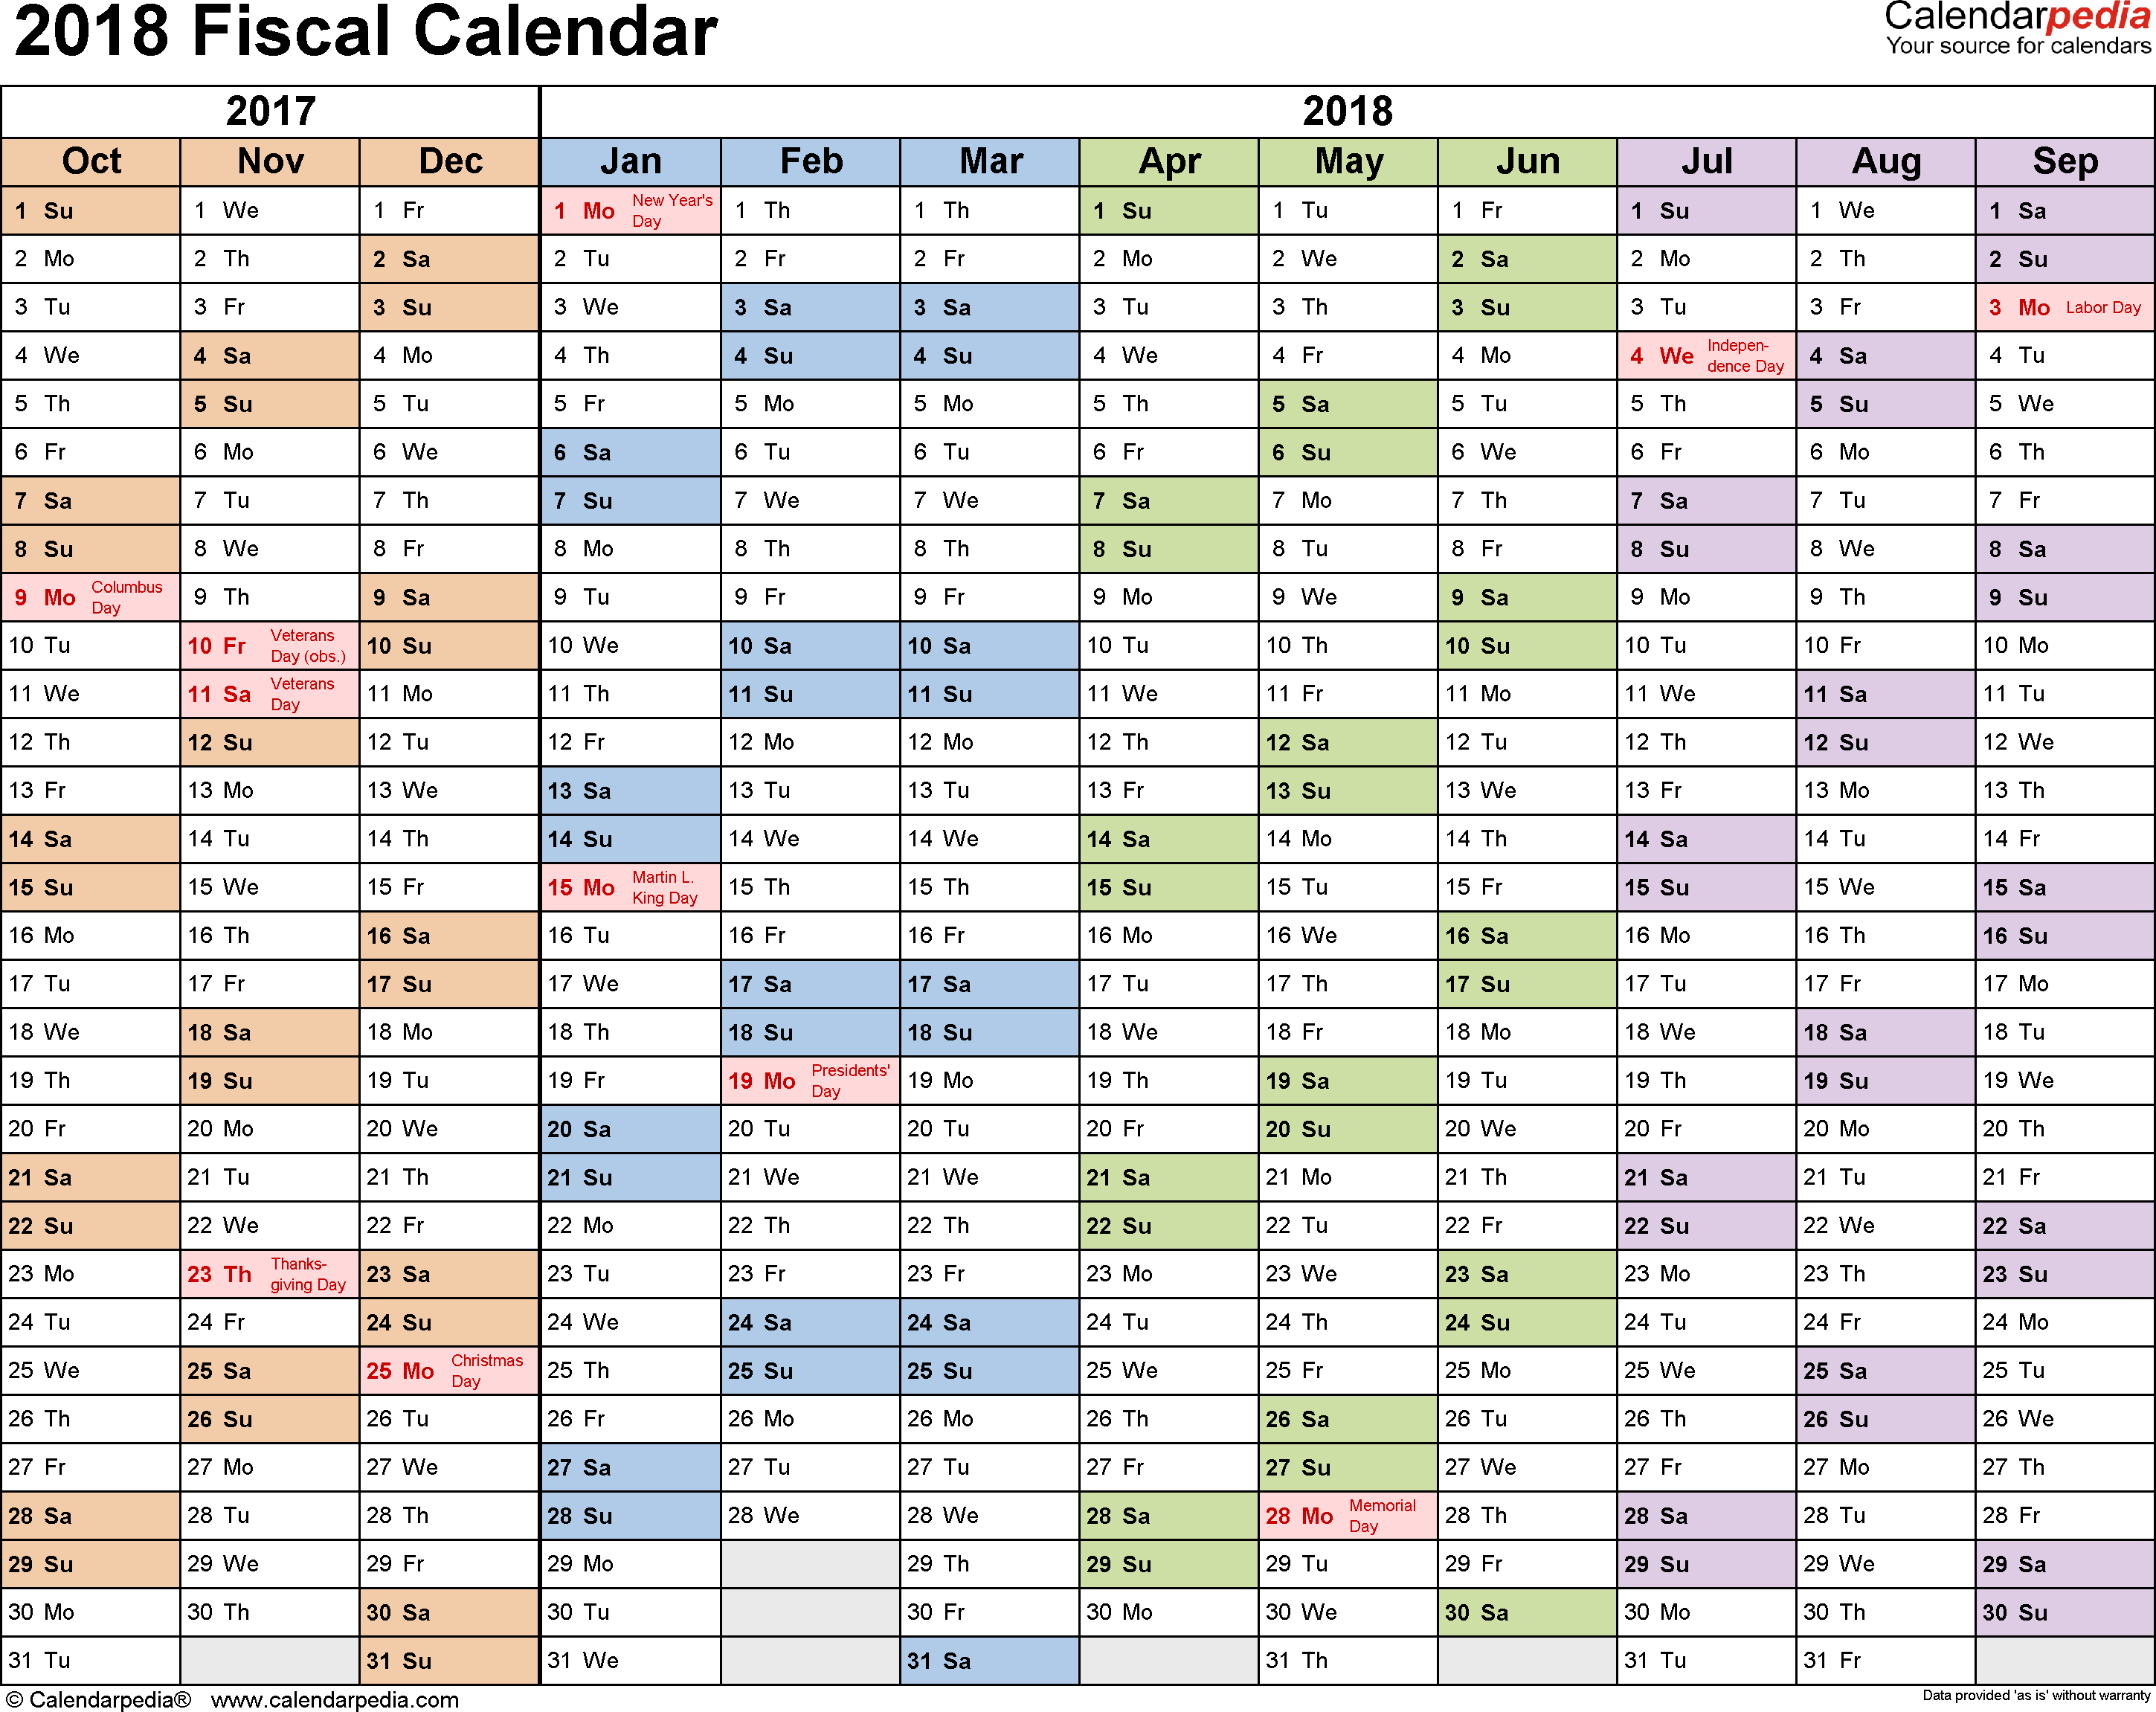 Template 1: Fiscal year calendar 2018 for PDF, landscape orientation, months horizontally, 1 page